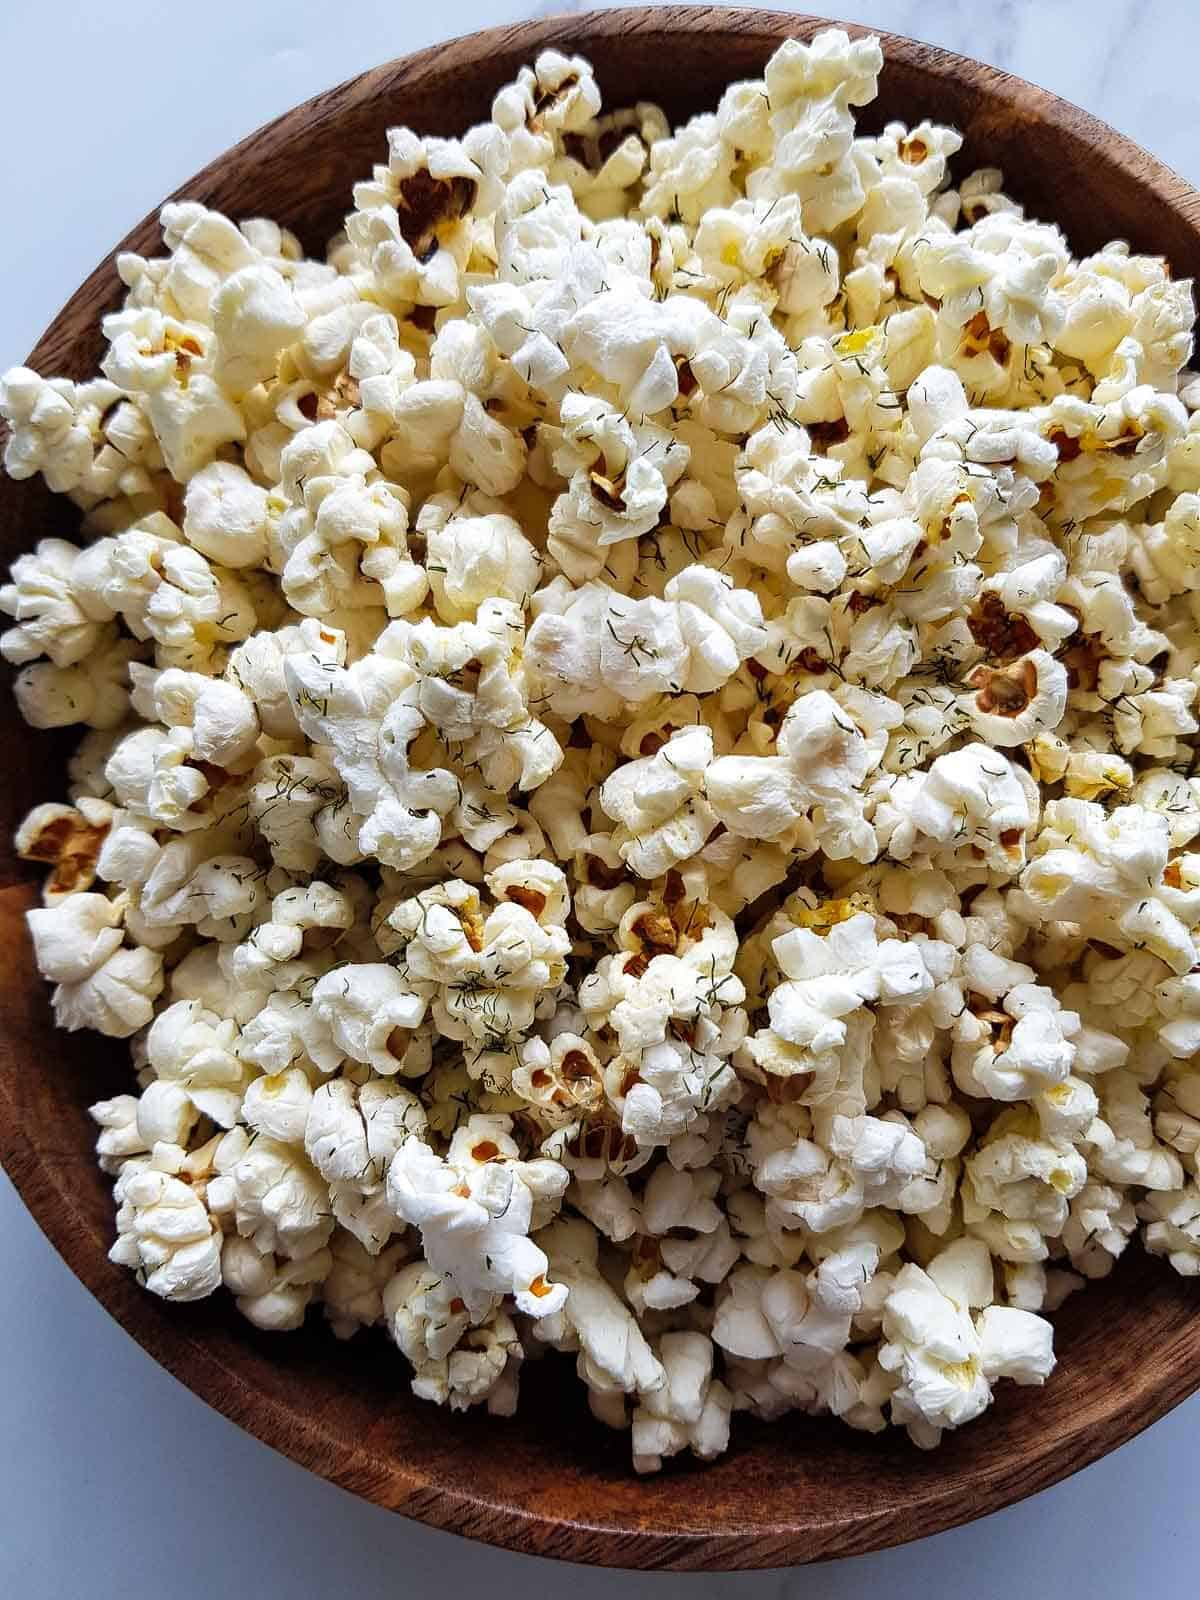 A close view of dill pickle popcorn.